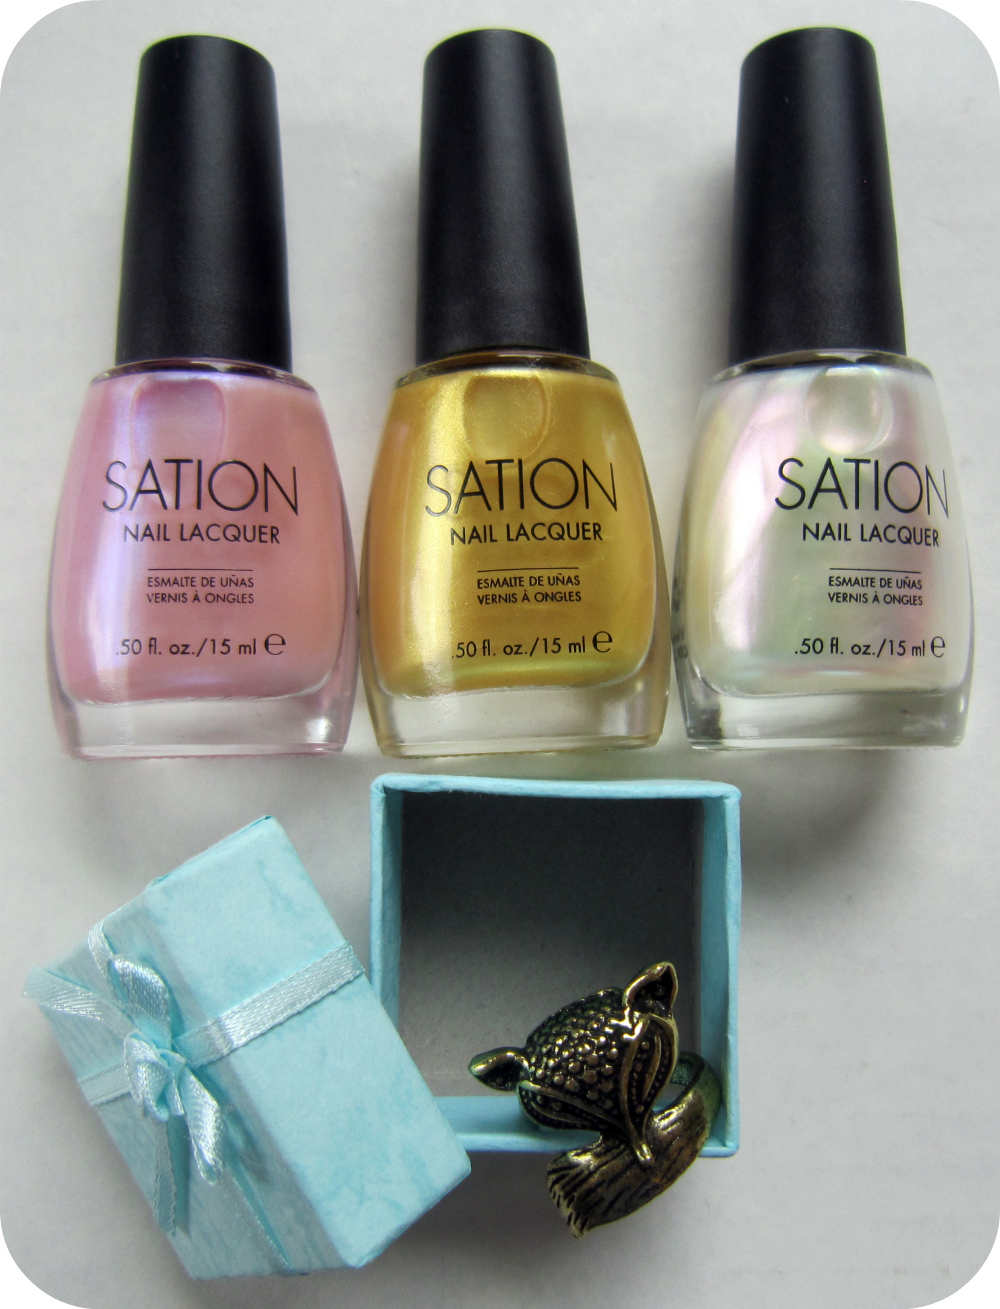 Winner 3 Lovely Sation Polishes Of Their Own I M Throwing In A Cute Fox Ring Too From Left To Right We Have Cotton Candy 18k Gold Angel White